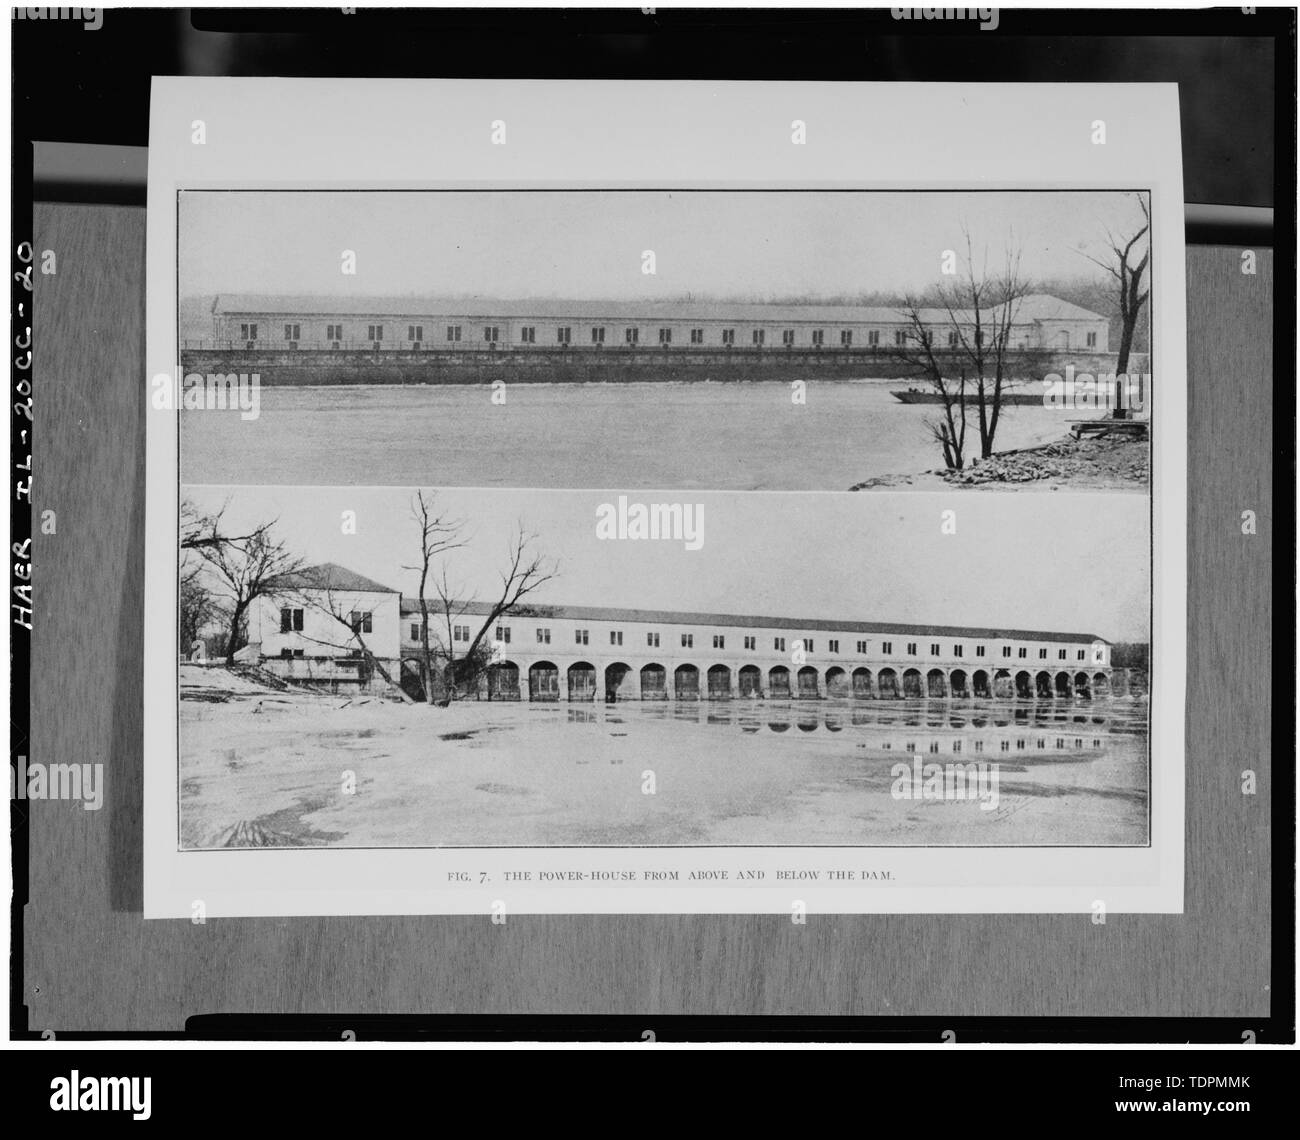 Photograph of a photograph in possession of Rock Island Arsenal Historical Office. NORTH (ABOVE) AND SOUTH (BELOW) ELEVATIONS AFTER CONSTRUCTION OF 1903 ADDITION TO EAST ELEVATION. ORIGINALLY PUBLISHED IN 1905. - Rock Island Arsenal, Building No. 160, Sylvan Drive, Rock Island, Rock Island County, IL; Central Engineering Company of Davenport - Stock Image